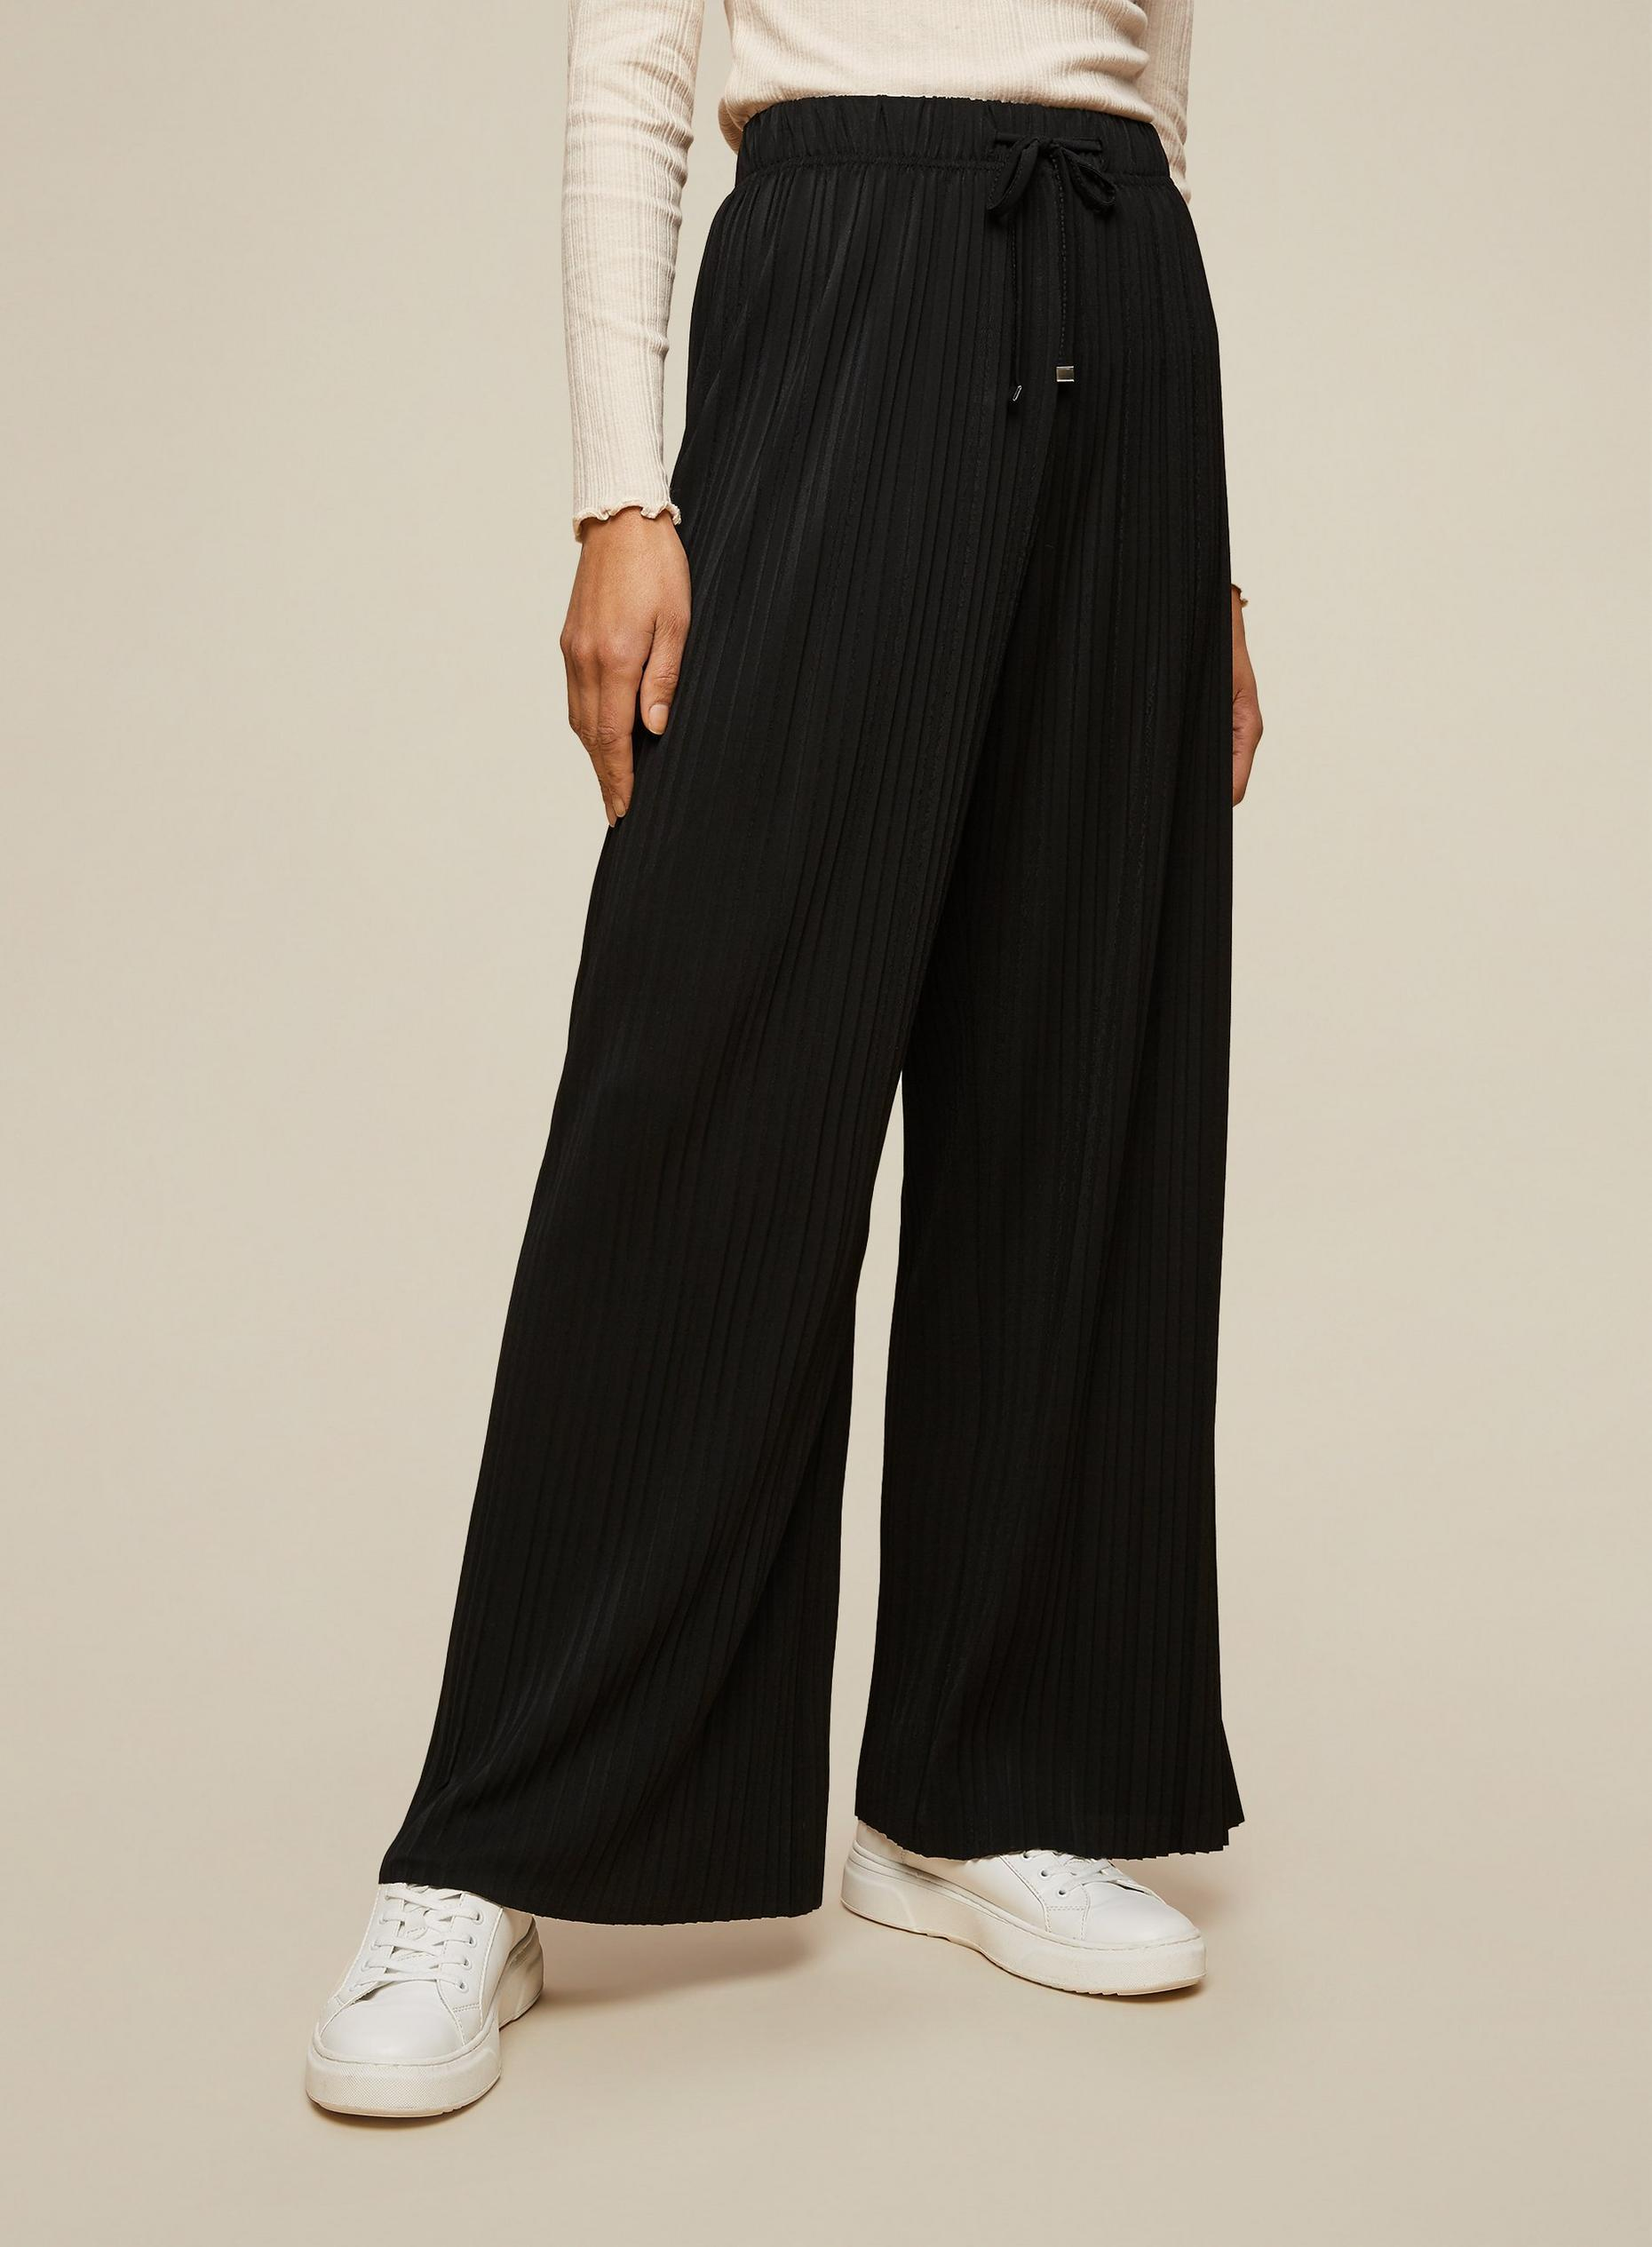 Black Jersey Pleated Trousers